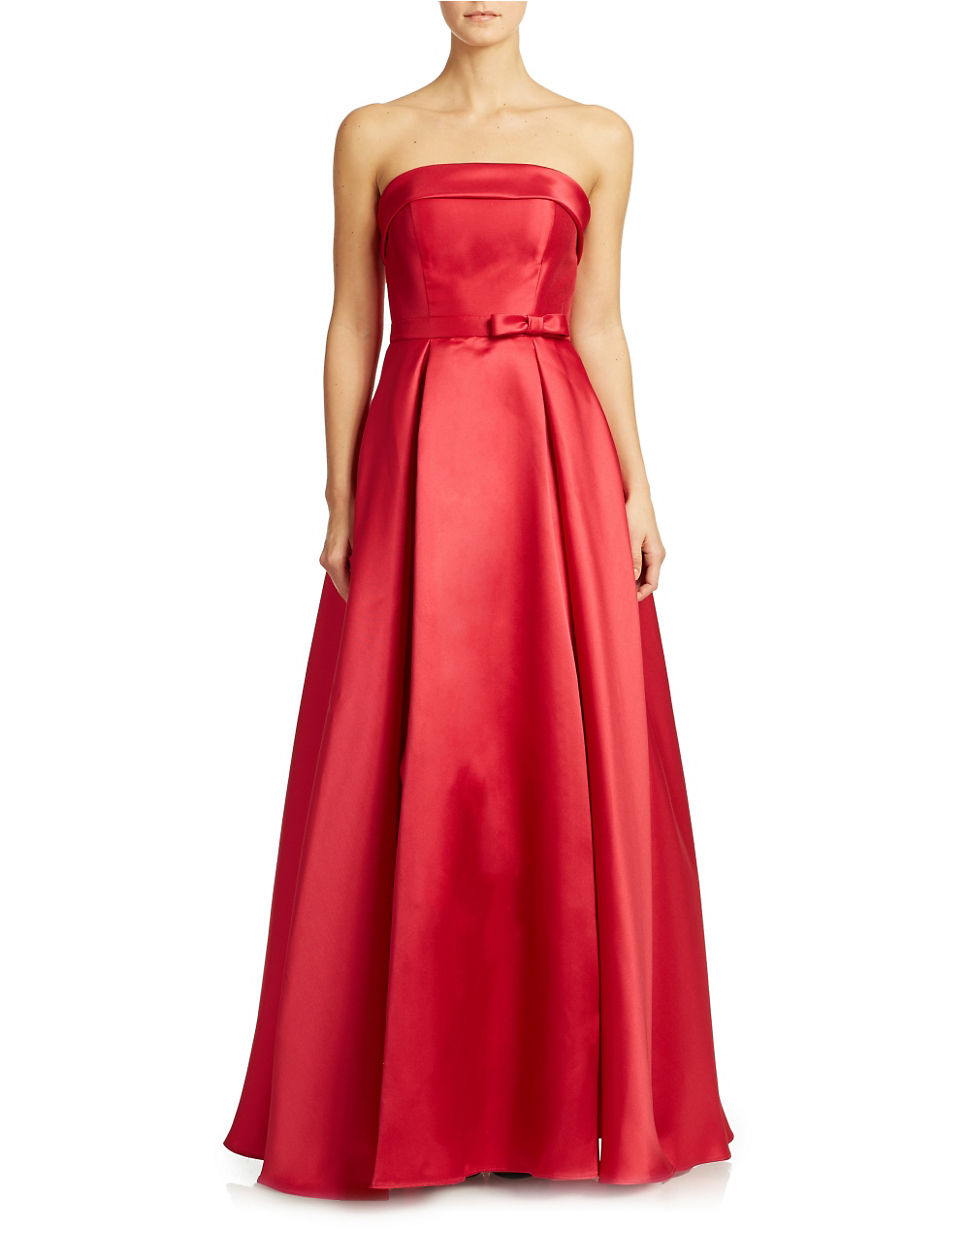 Lyst - Xscape Strapless Evening Gown in Red